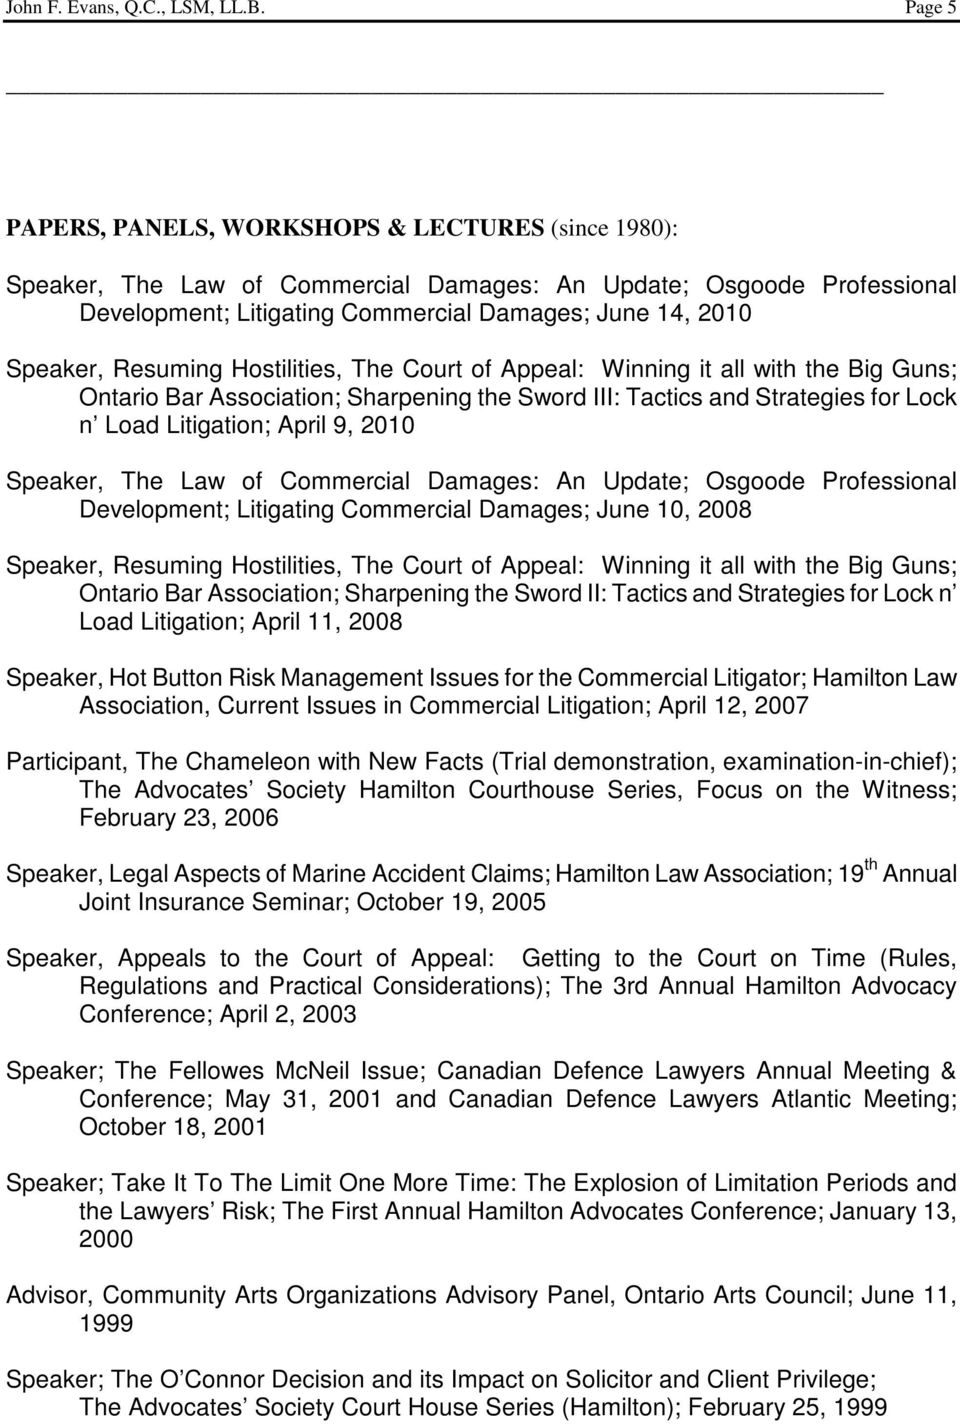 Resuming Hostilities, The Court of Appeal: Winning it all with the Big Guns; Ontario Bar Association; Sharpening the Sword III: Tactics and Strategies for Lock n Load Litigation; April 9, 2010